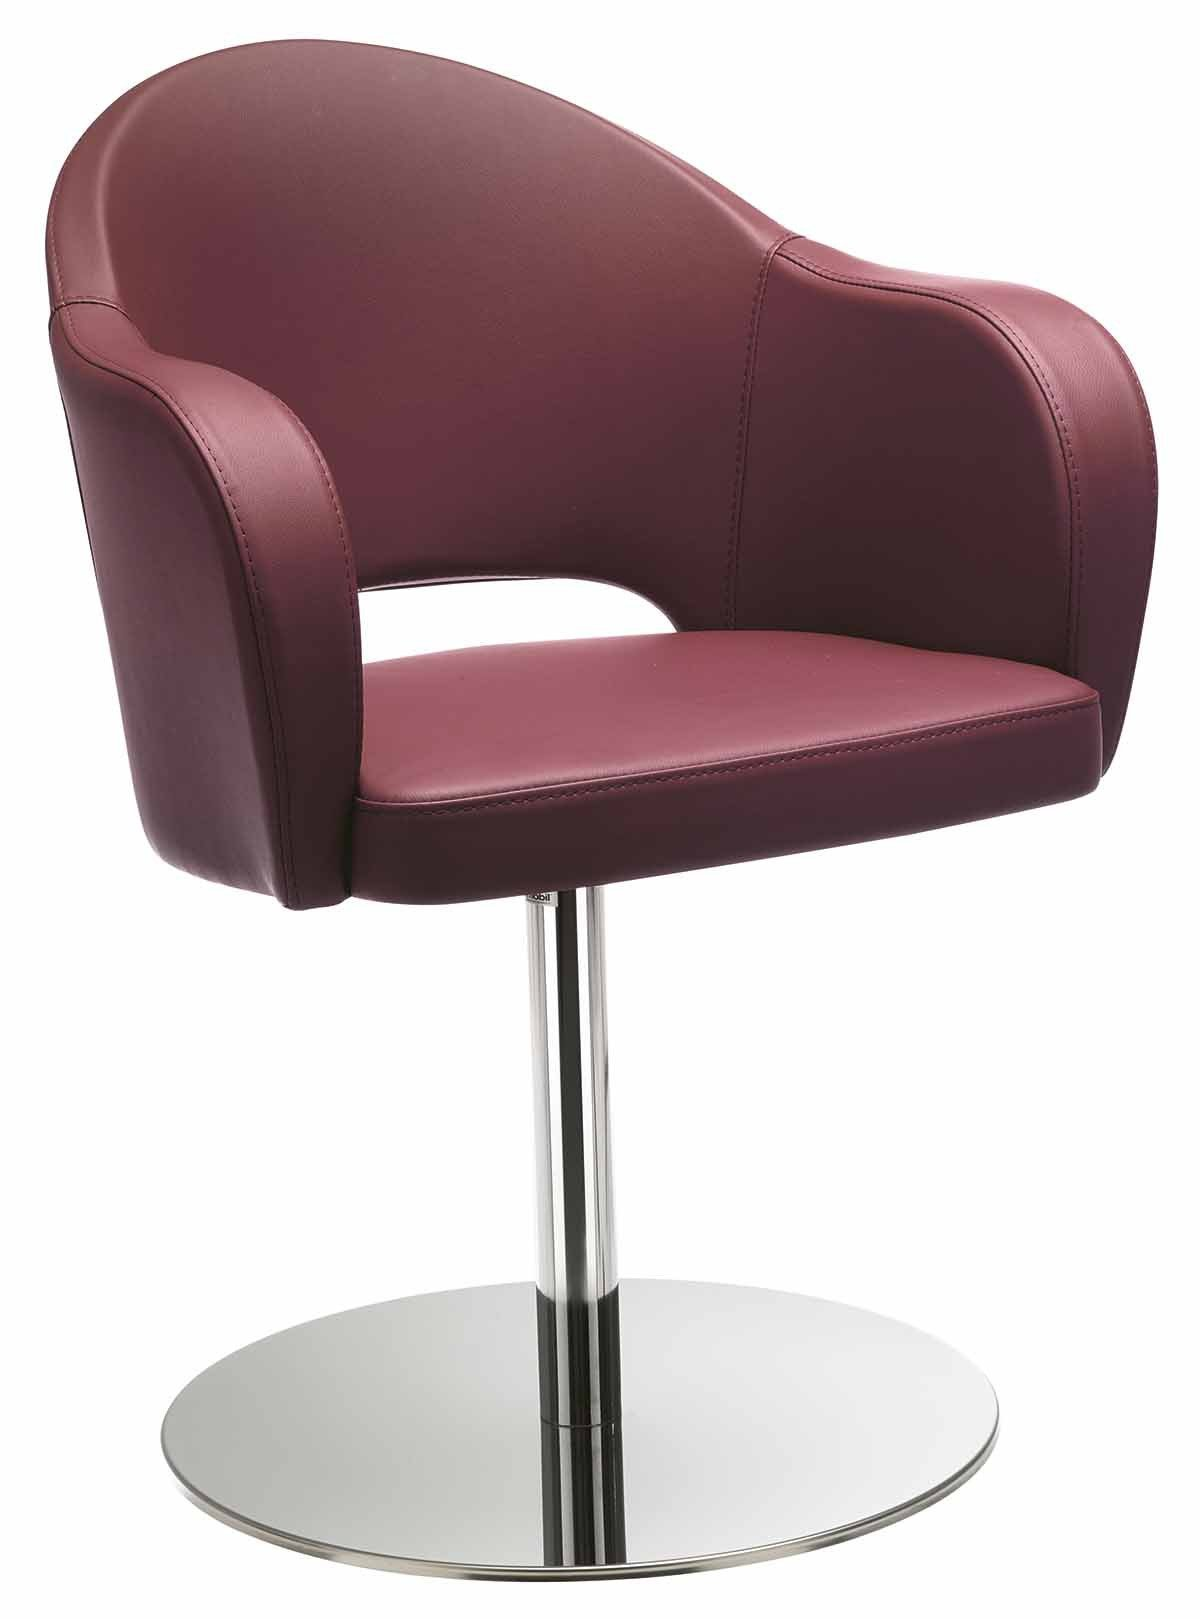 Agatha Armchair c/w Swivel Base-Metalmobil-Contract Furniture Store